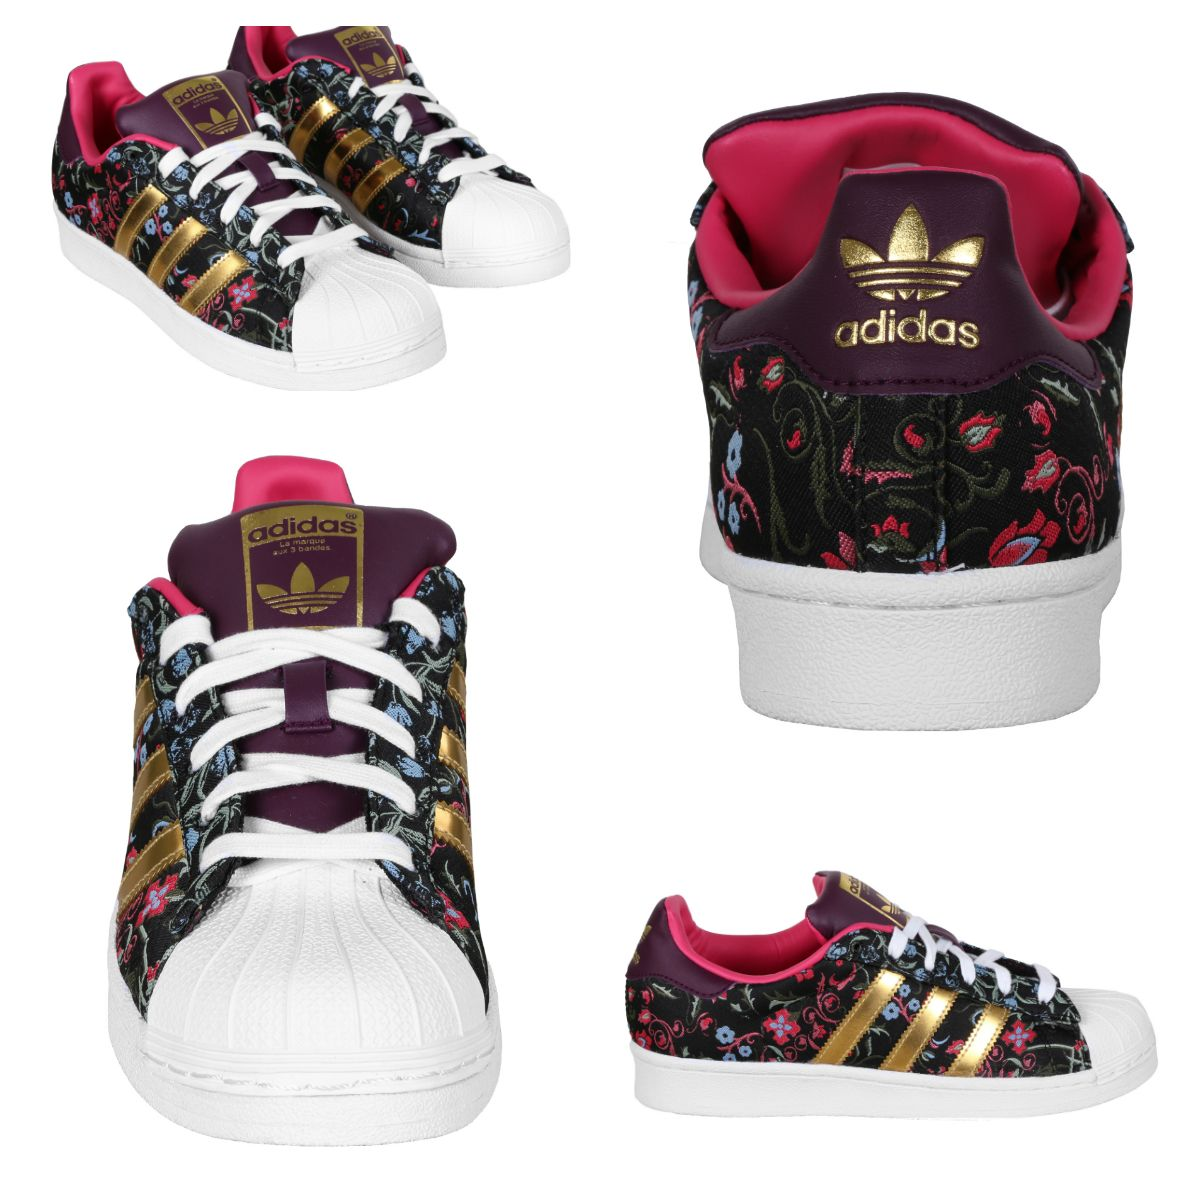 adidas Originals Shoes Wmns Superstar Russian-inspired floral graphics and  golden 3-Stripes.